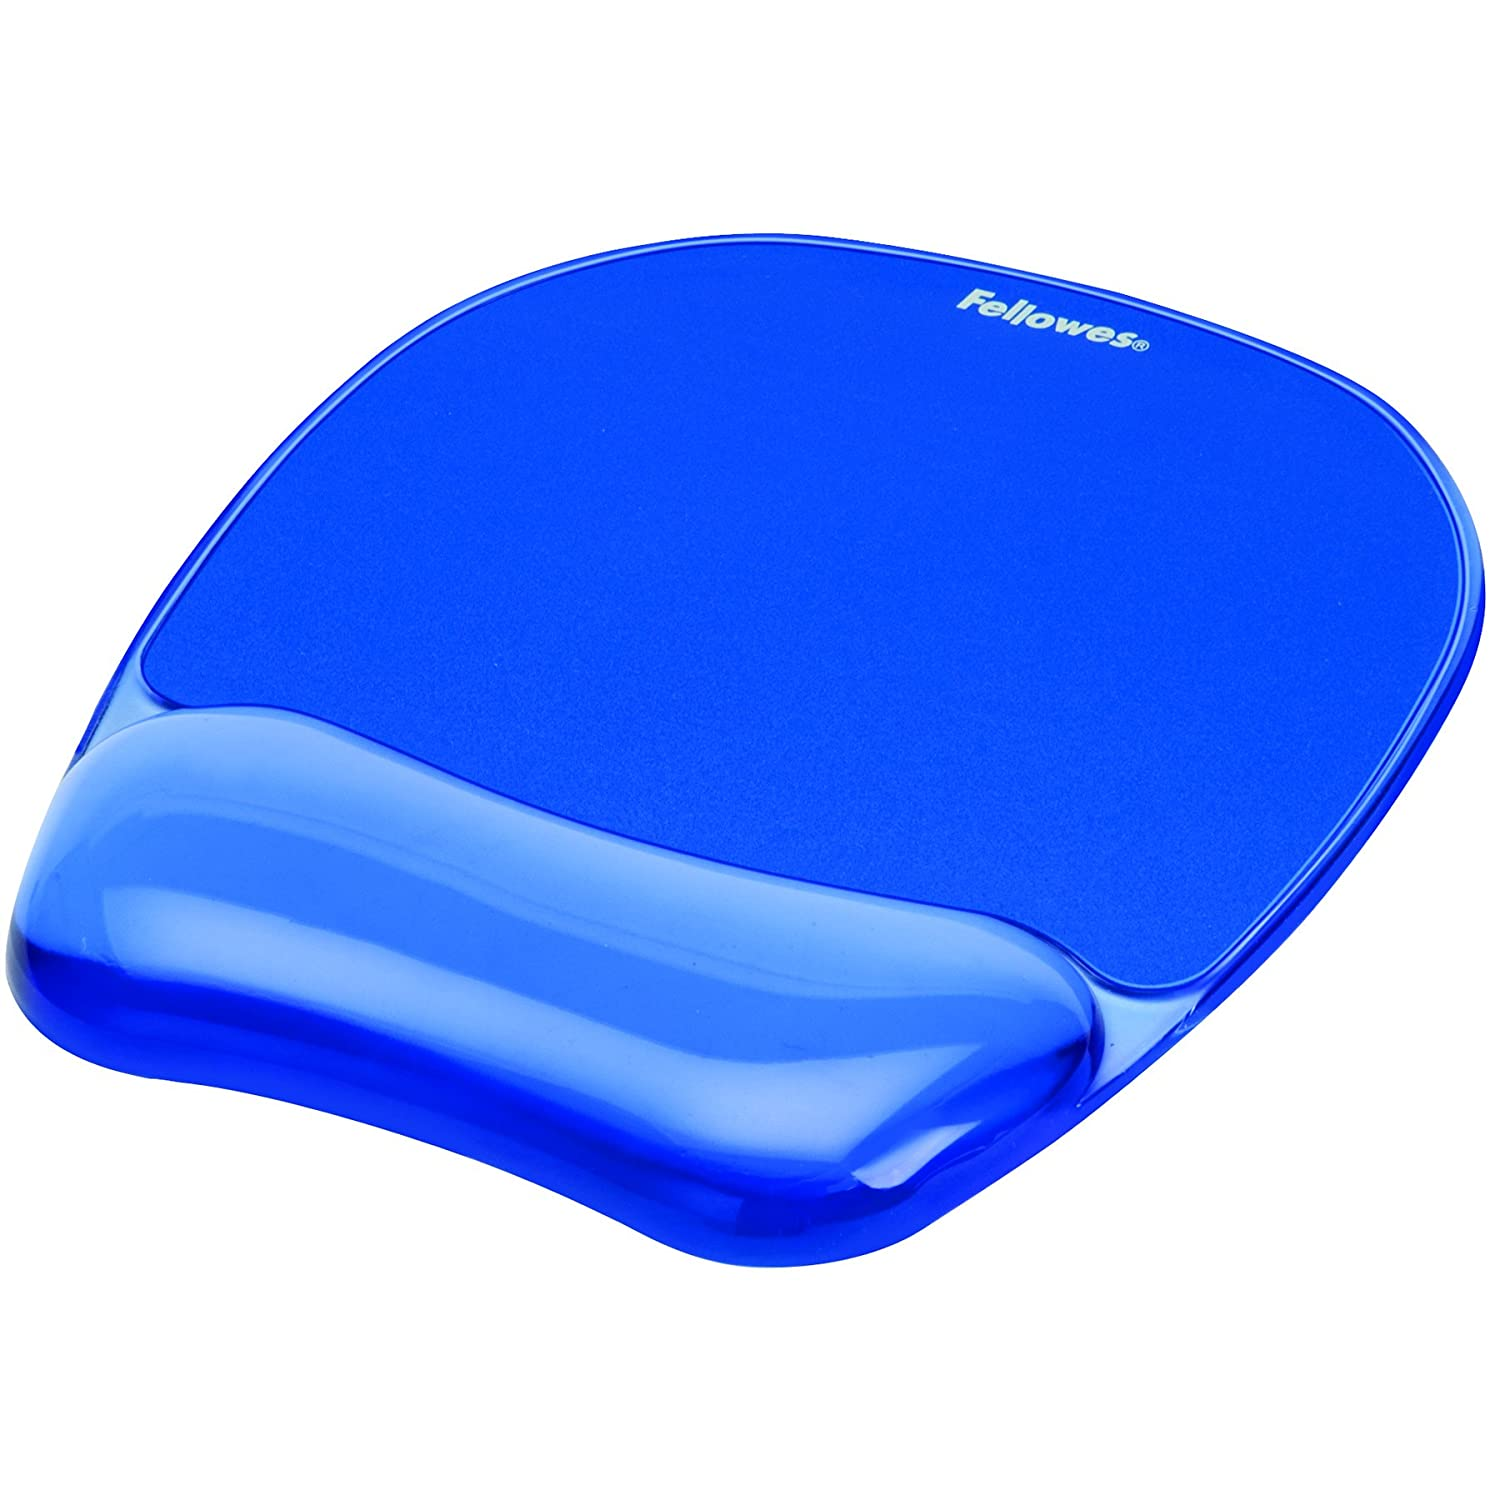 Fellowes 91141 Gel Crystal Mousepad/Wrist Rest (Blue) Inc. 9114120